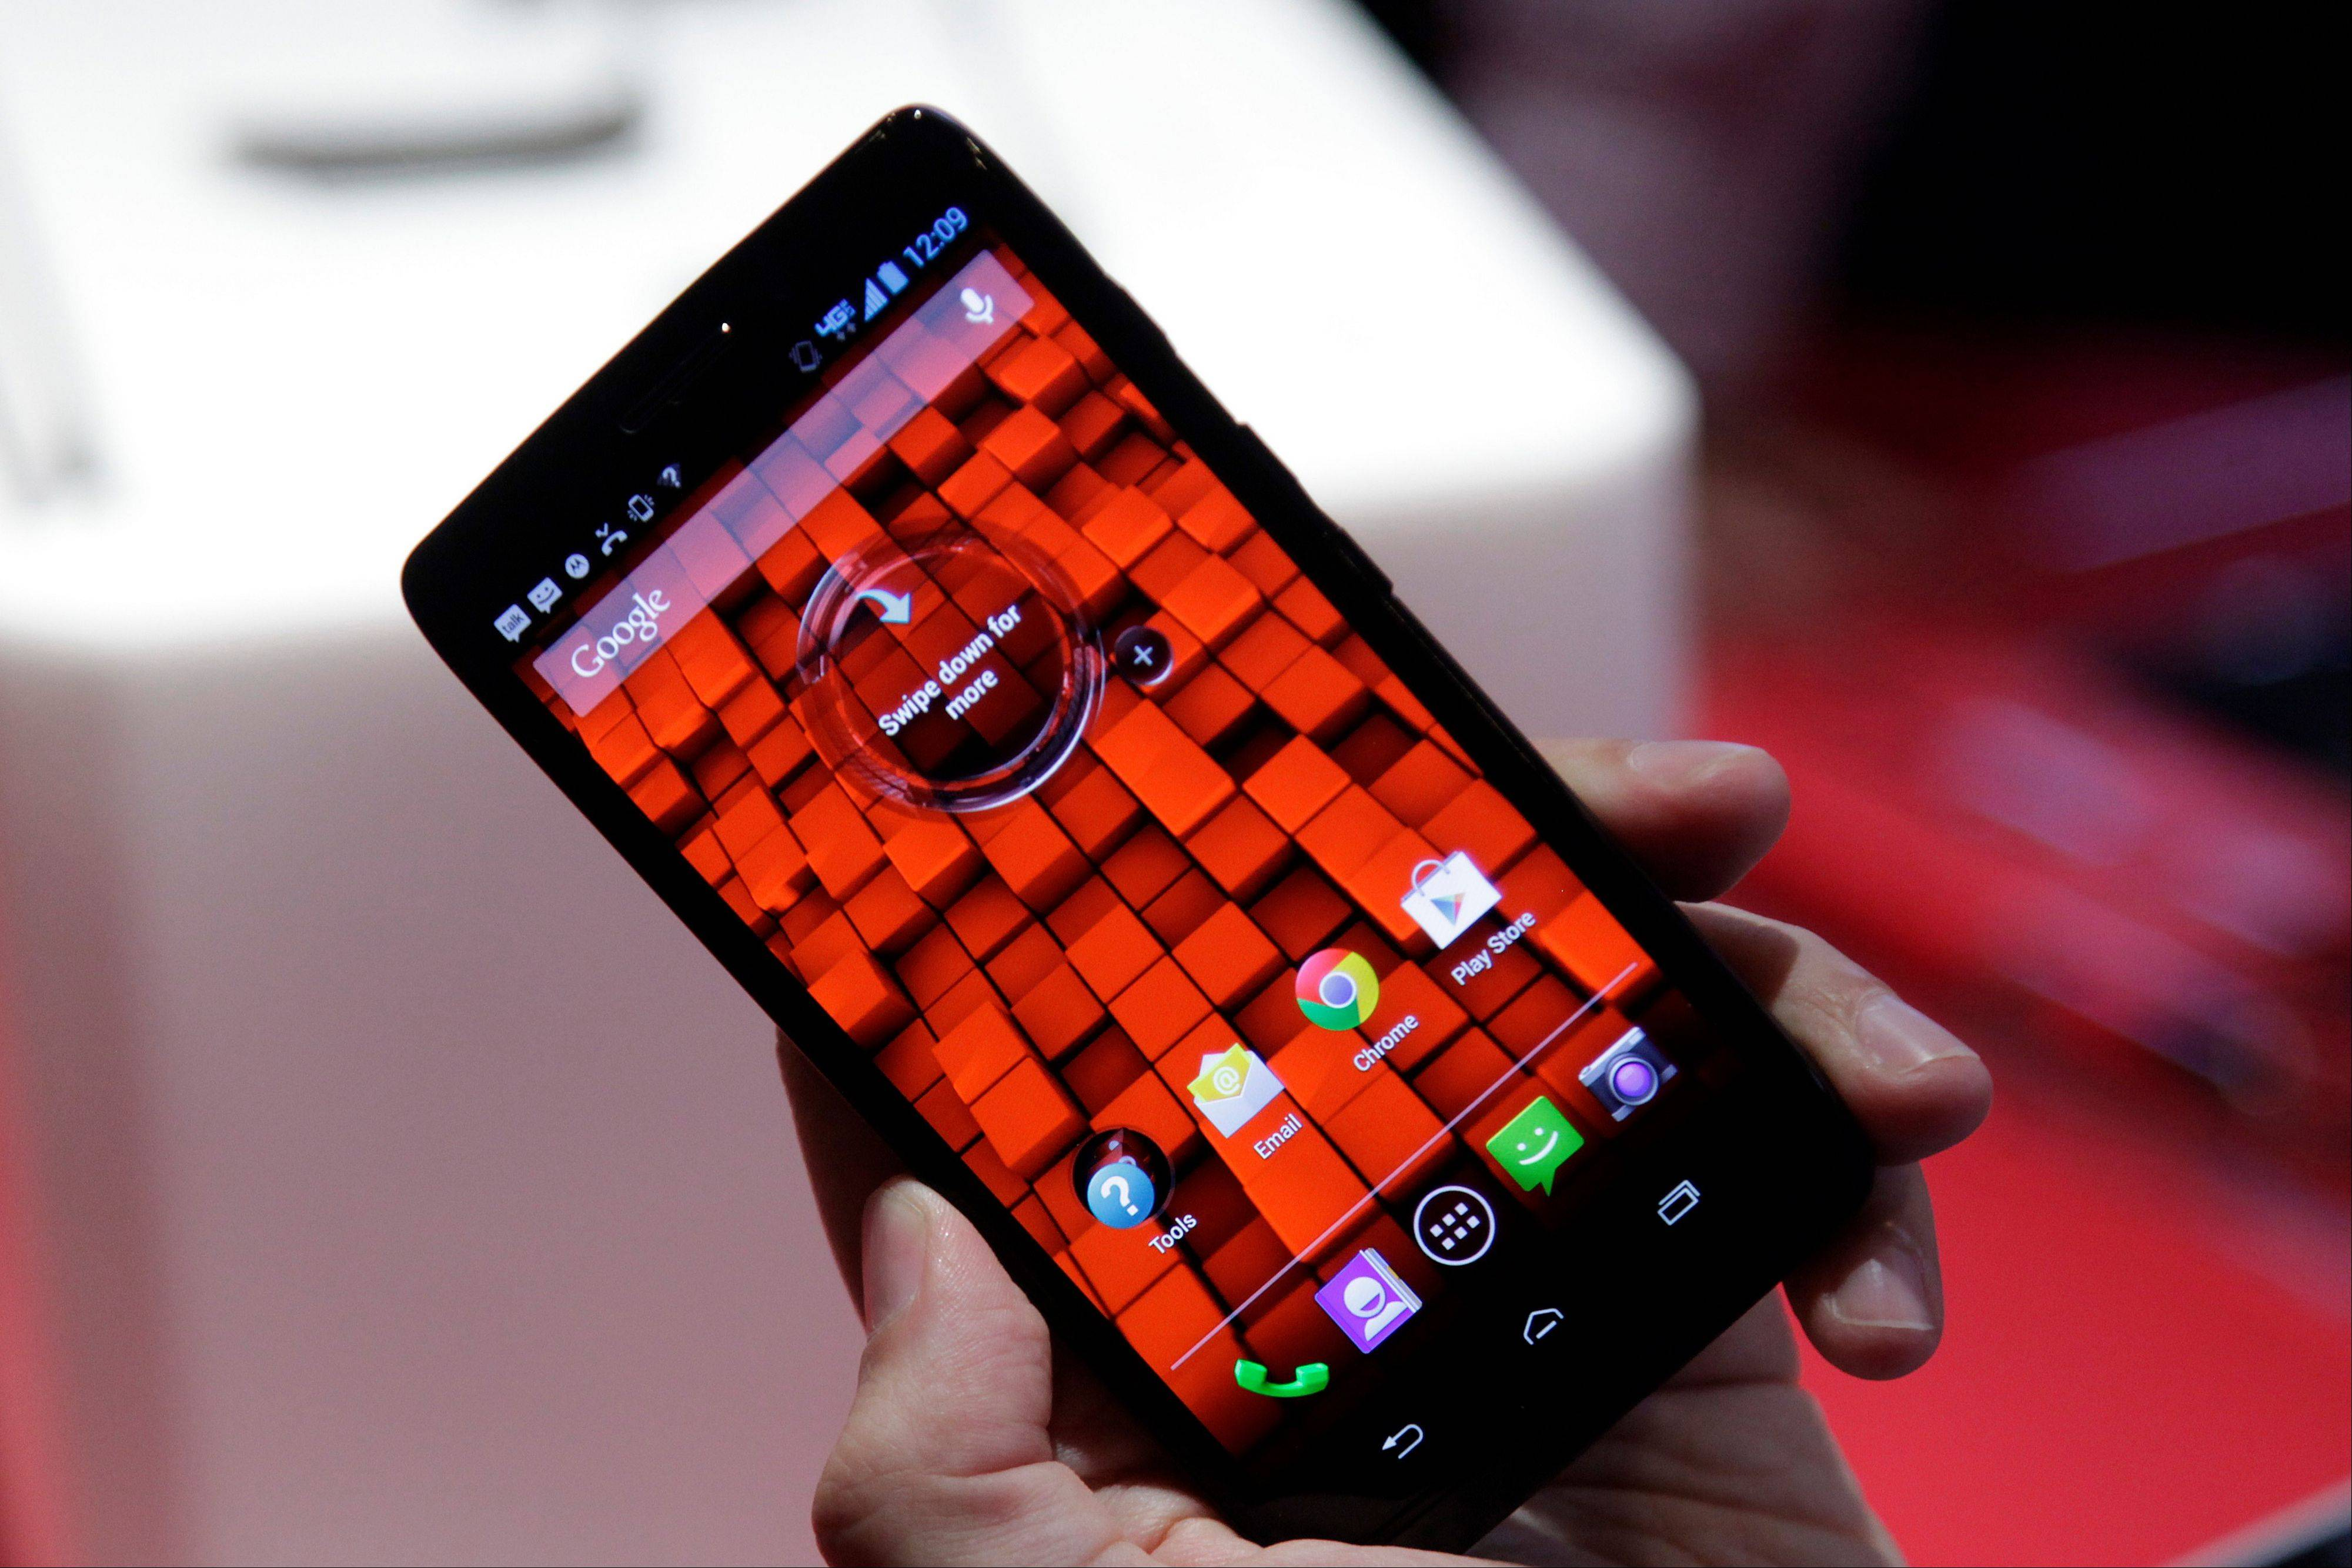 The Motorola Droid Ultra, offered by Verizon, is unveiled, Tuesday, July 23, 2013 in New York. The 5-inch smartphone has a Kevlar shell that makes it thinner and stronger and it is equipped with a dual-core X8 Mobile Computing System.